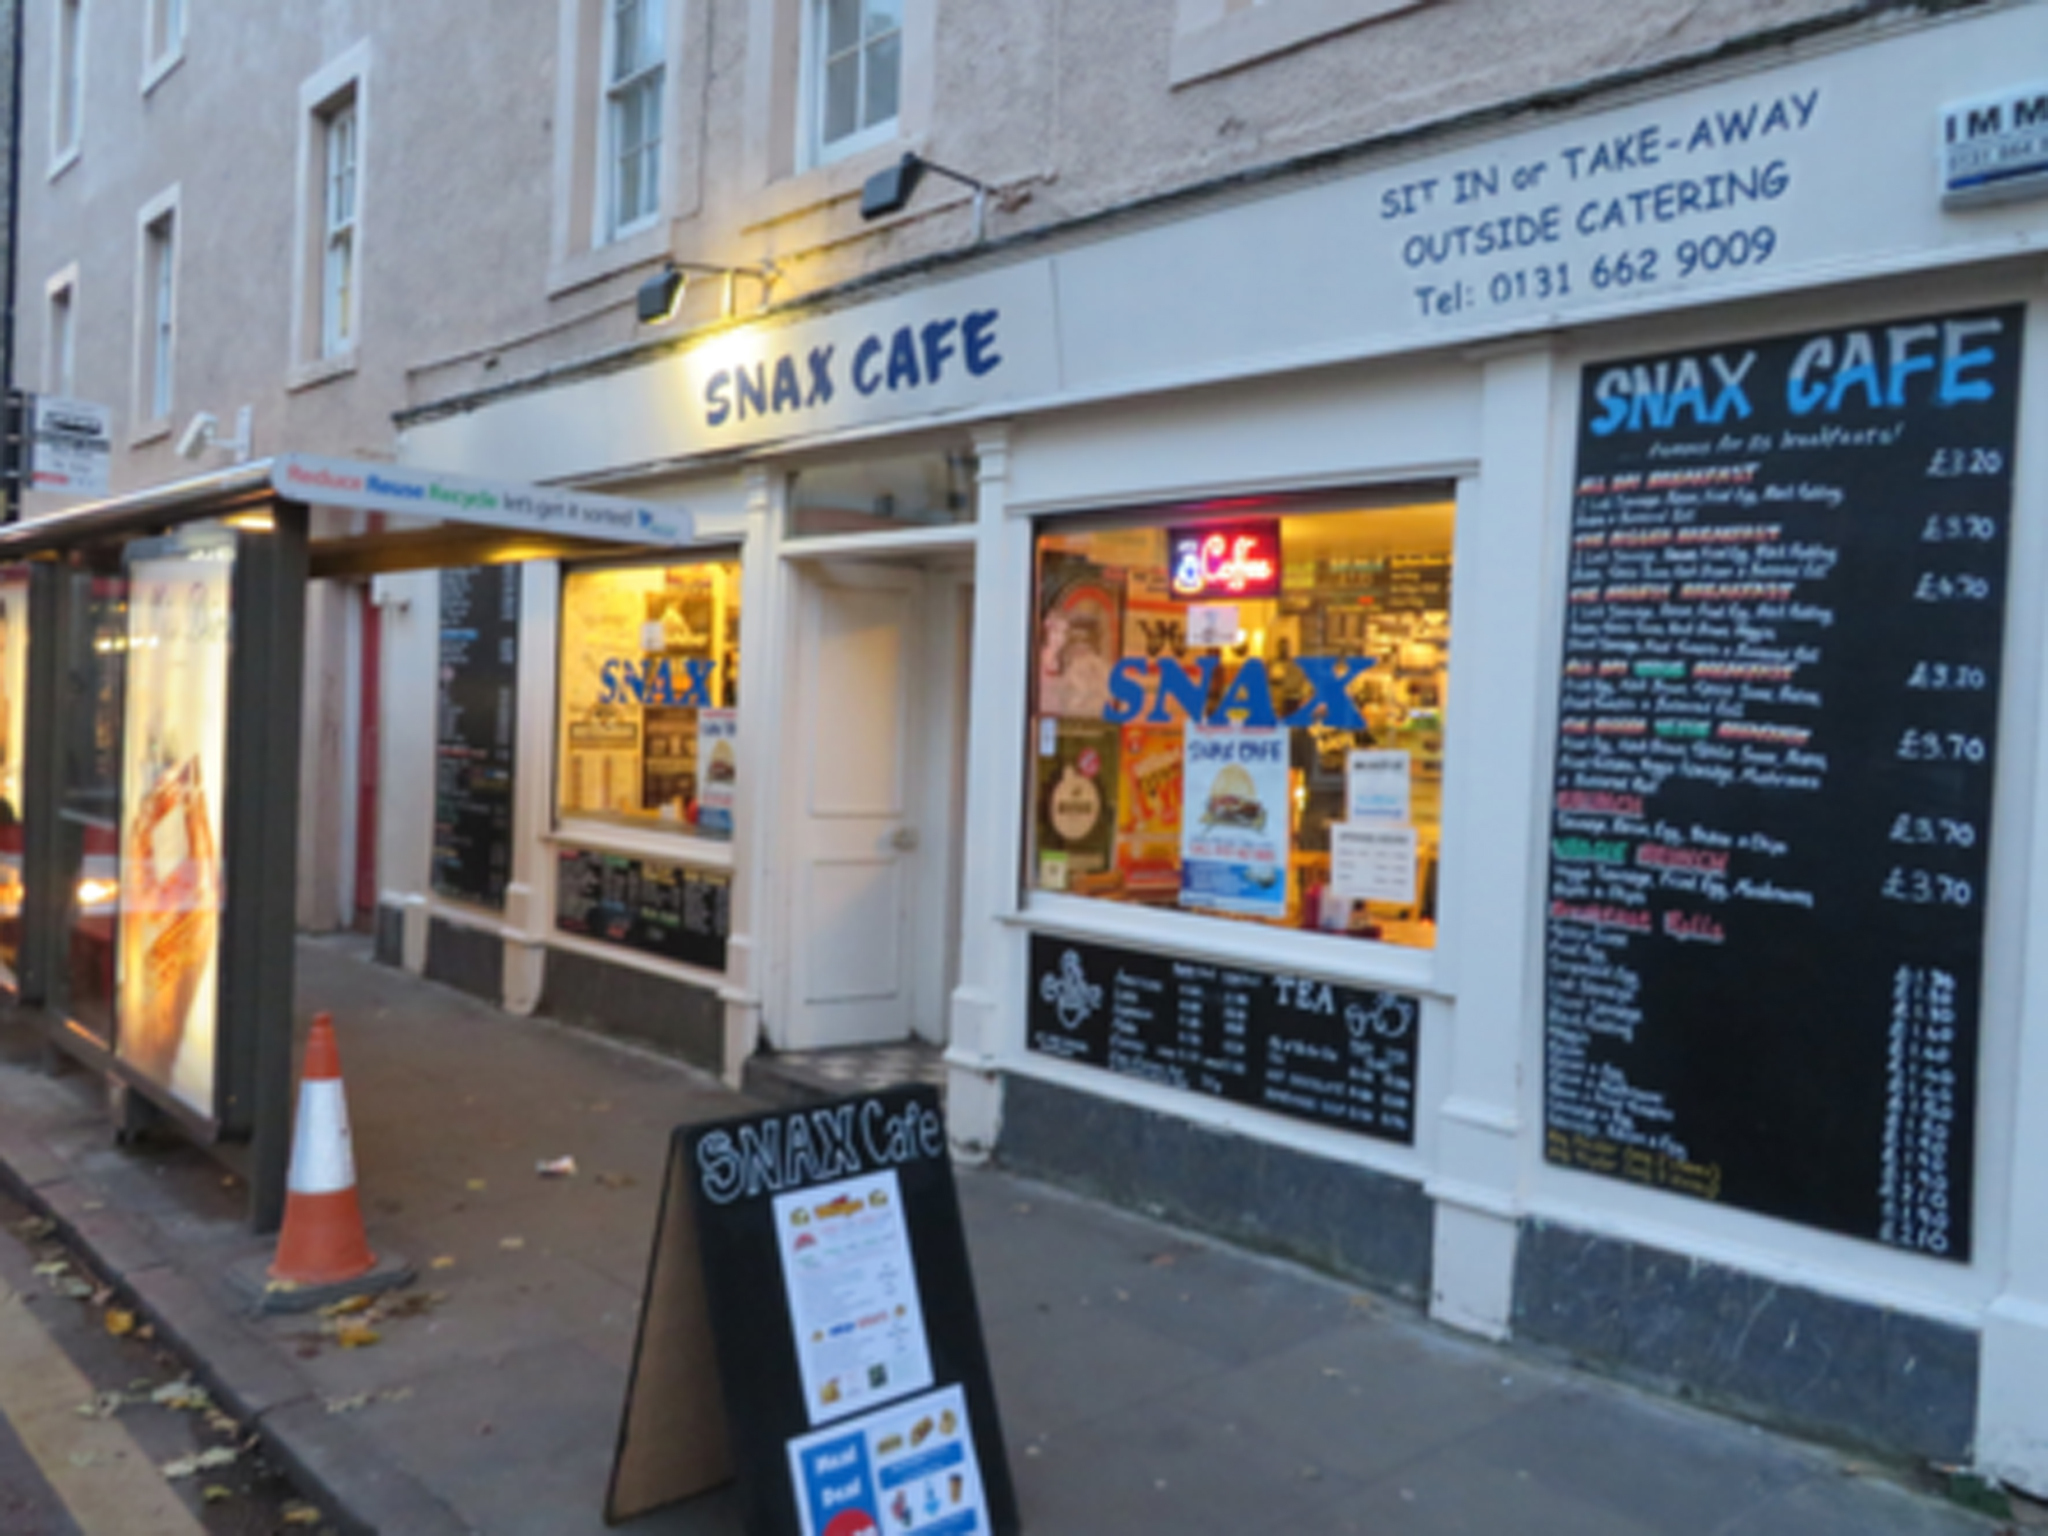 The exterior of Snax Café in Edinburgh